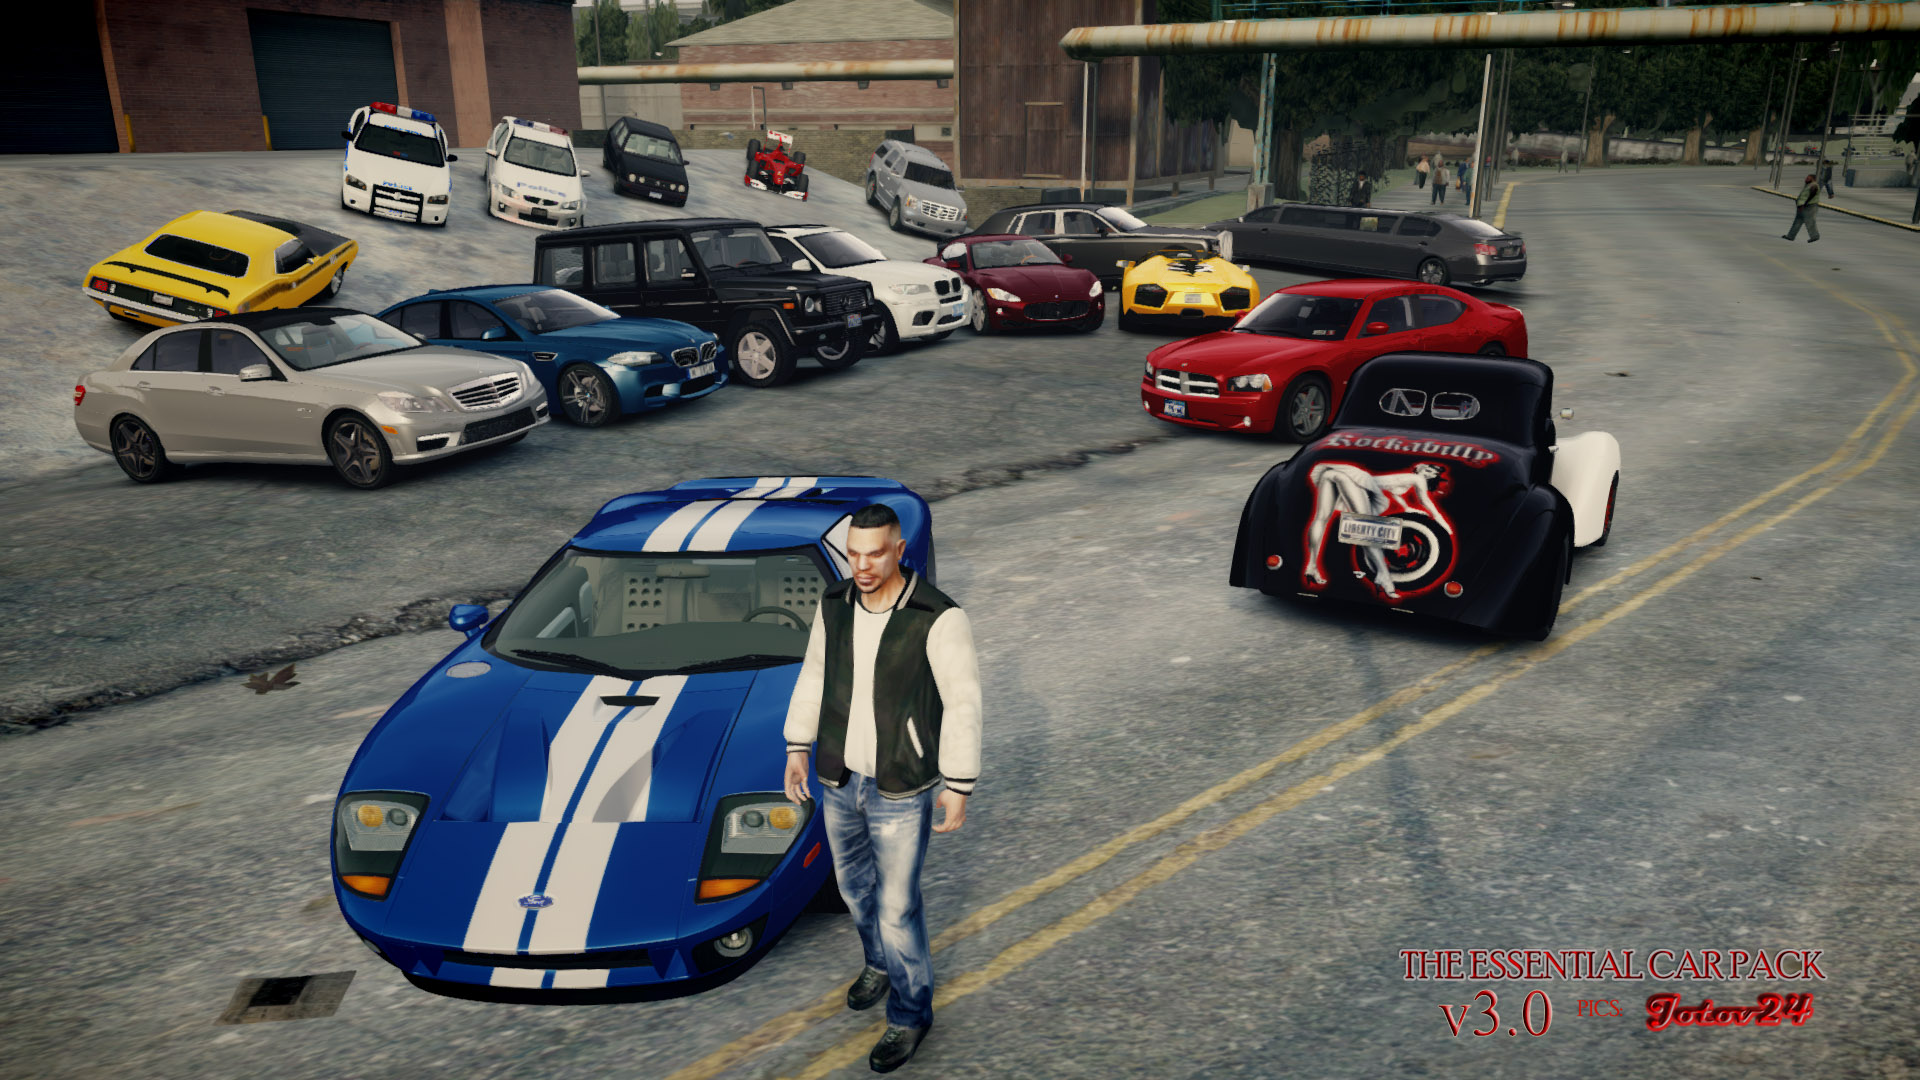 Gta 4 car packs mod | Download GTA IV Ultimate Vehicle Pack